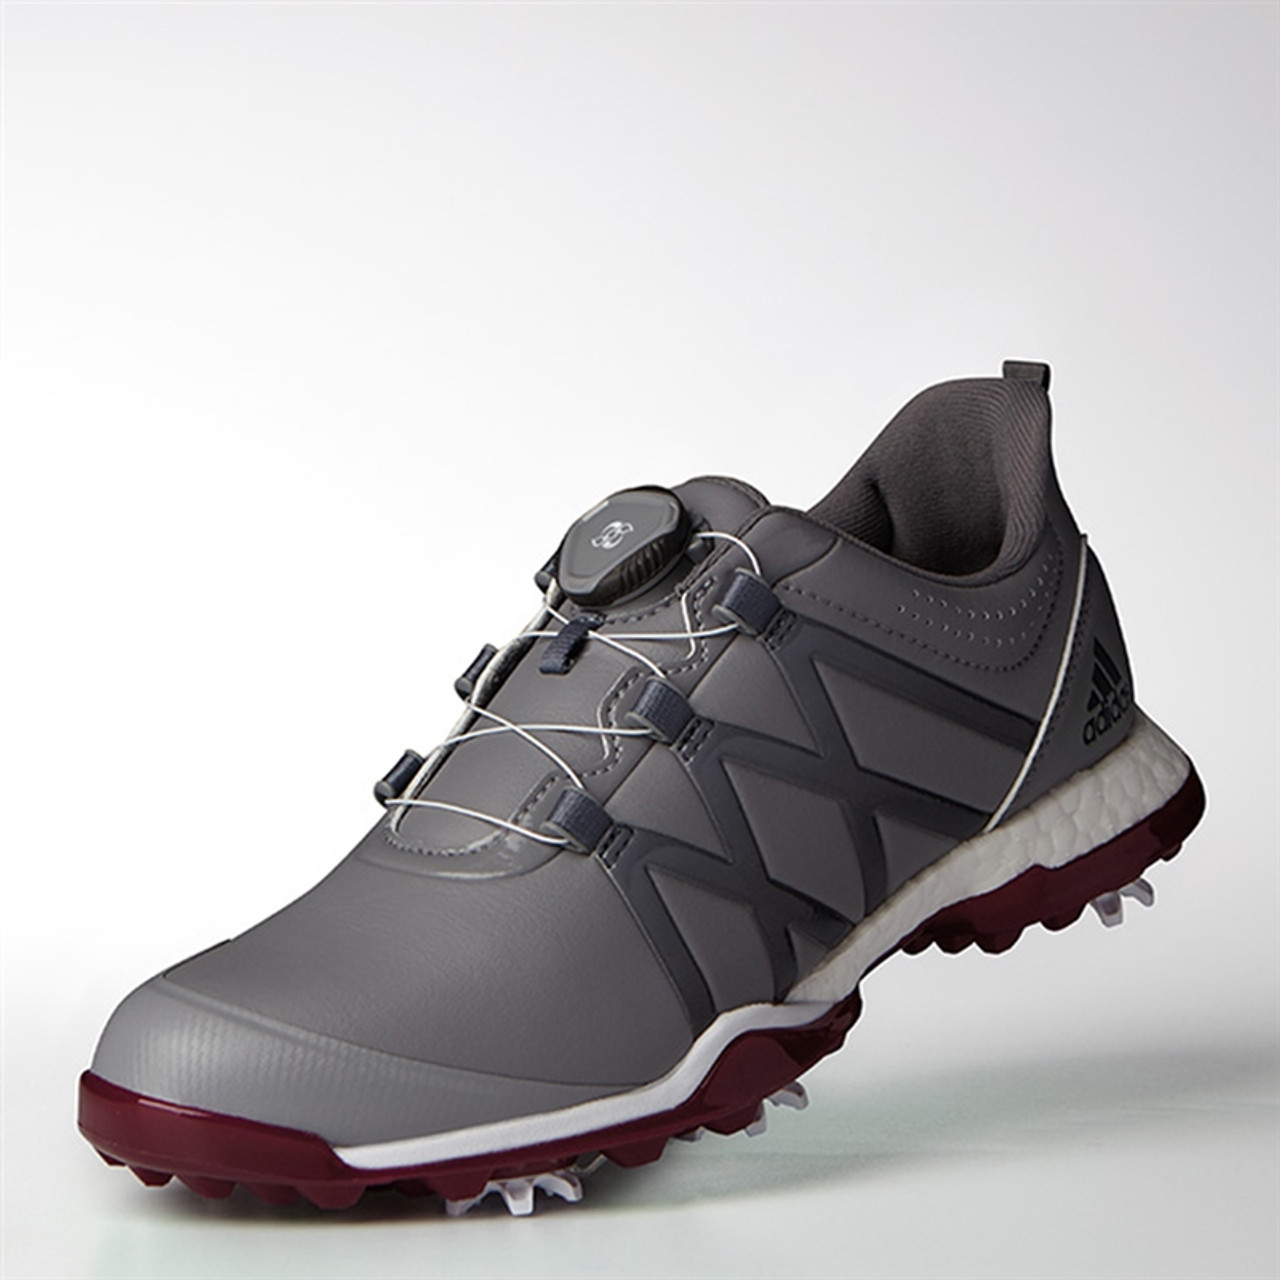 d58a80fca33 Adidas Womens Adipower Boost BOA Golf Shoe - Grey  Mystery Ruby ...